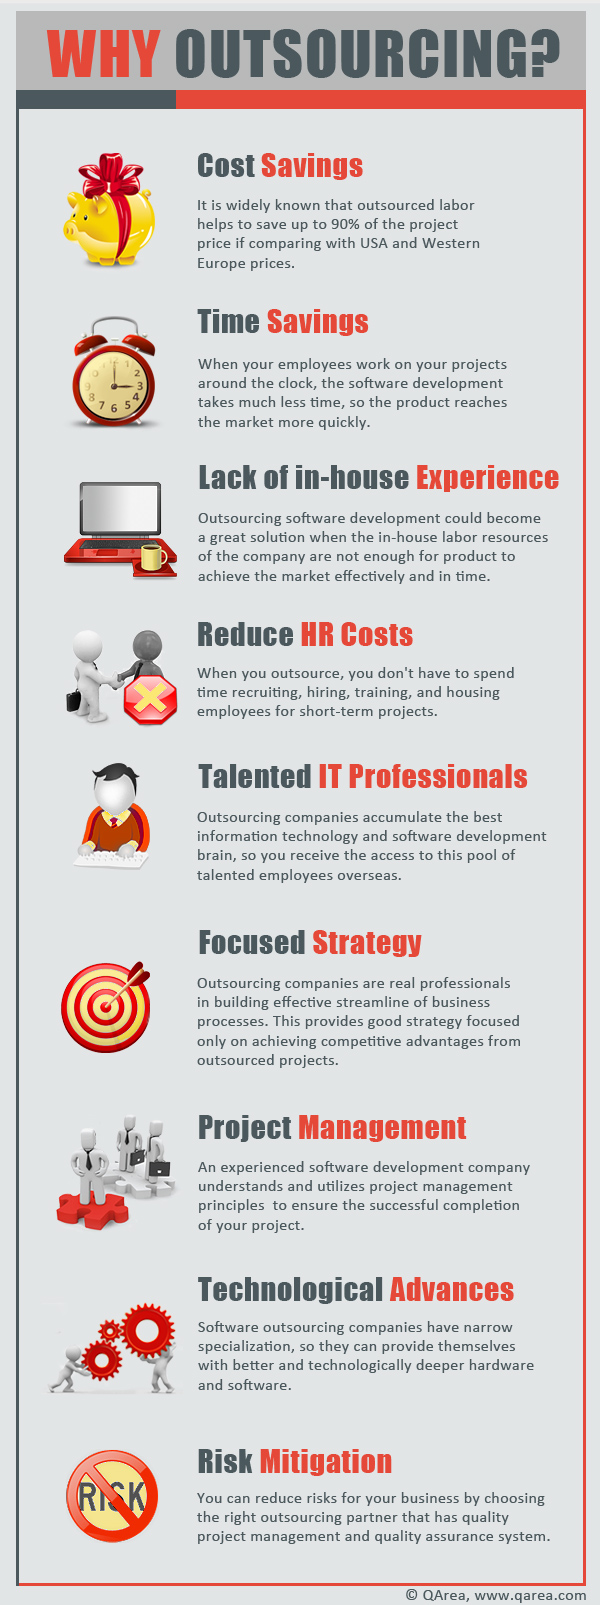 9-reasons-to-consider-outsourcing.jpg